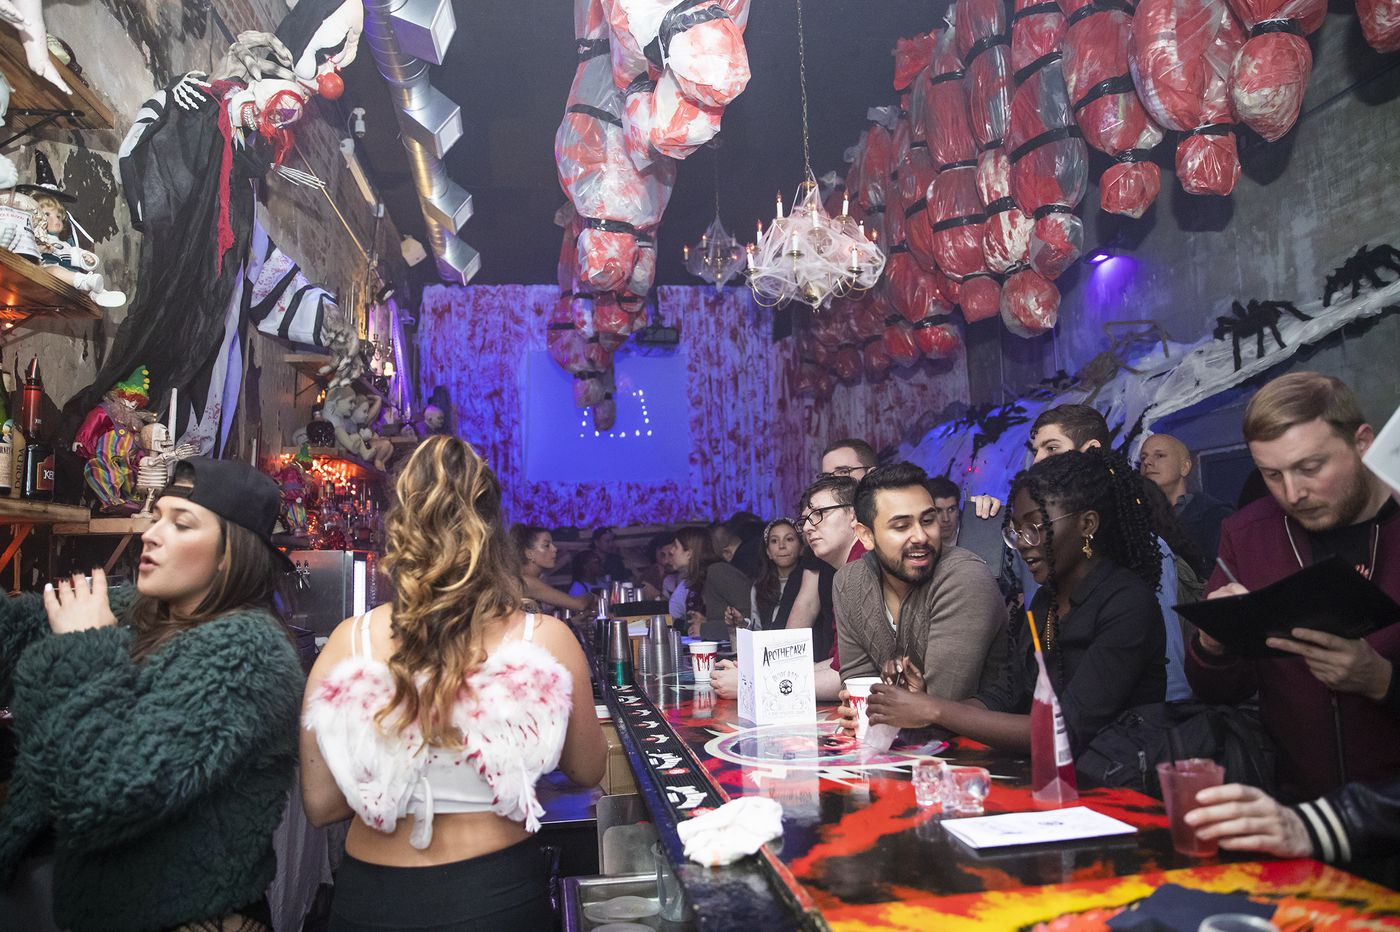 Gory, classy, confusing: A tour of Philly's Halloween pop-up bars